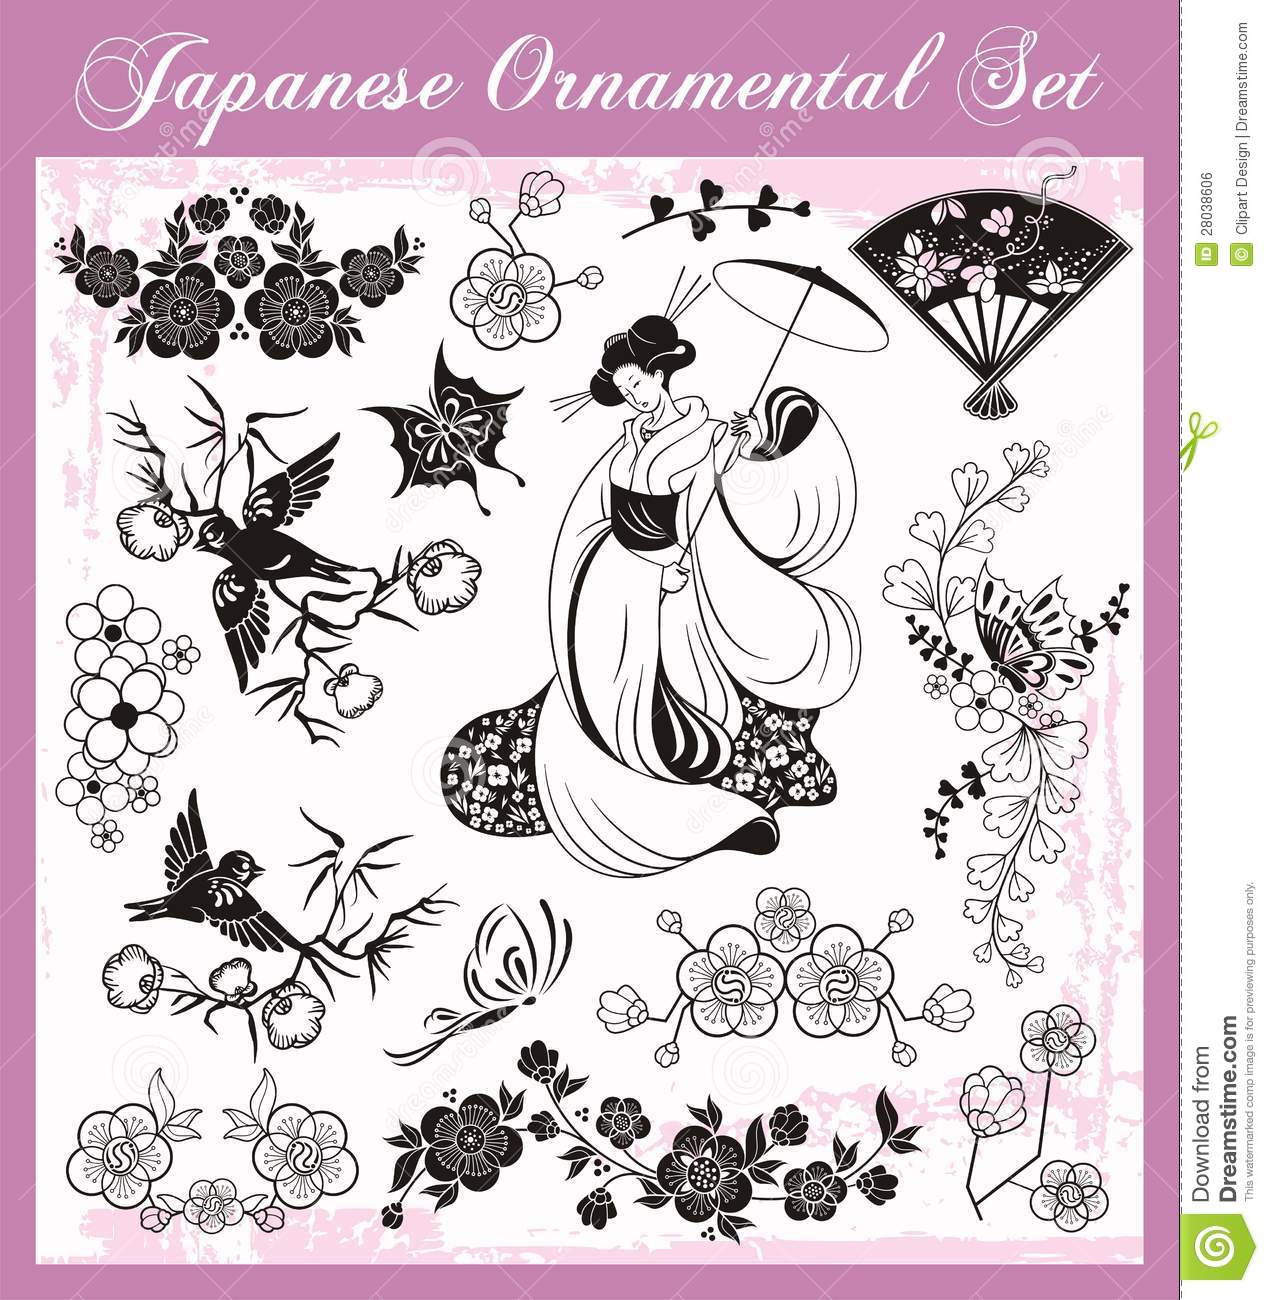 Japanese Traditional Ornaments Set Vector Illustration